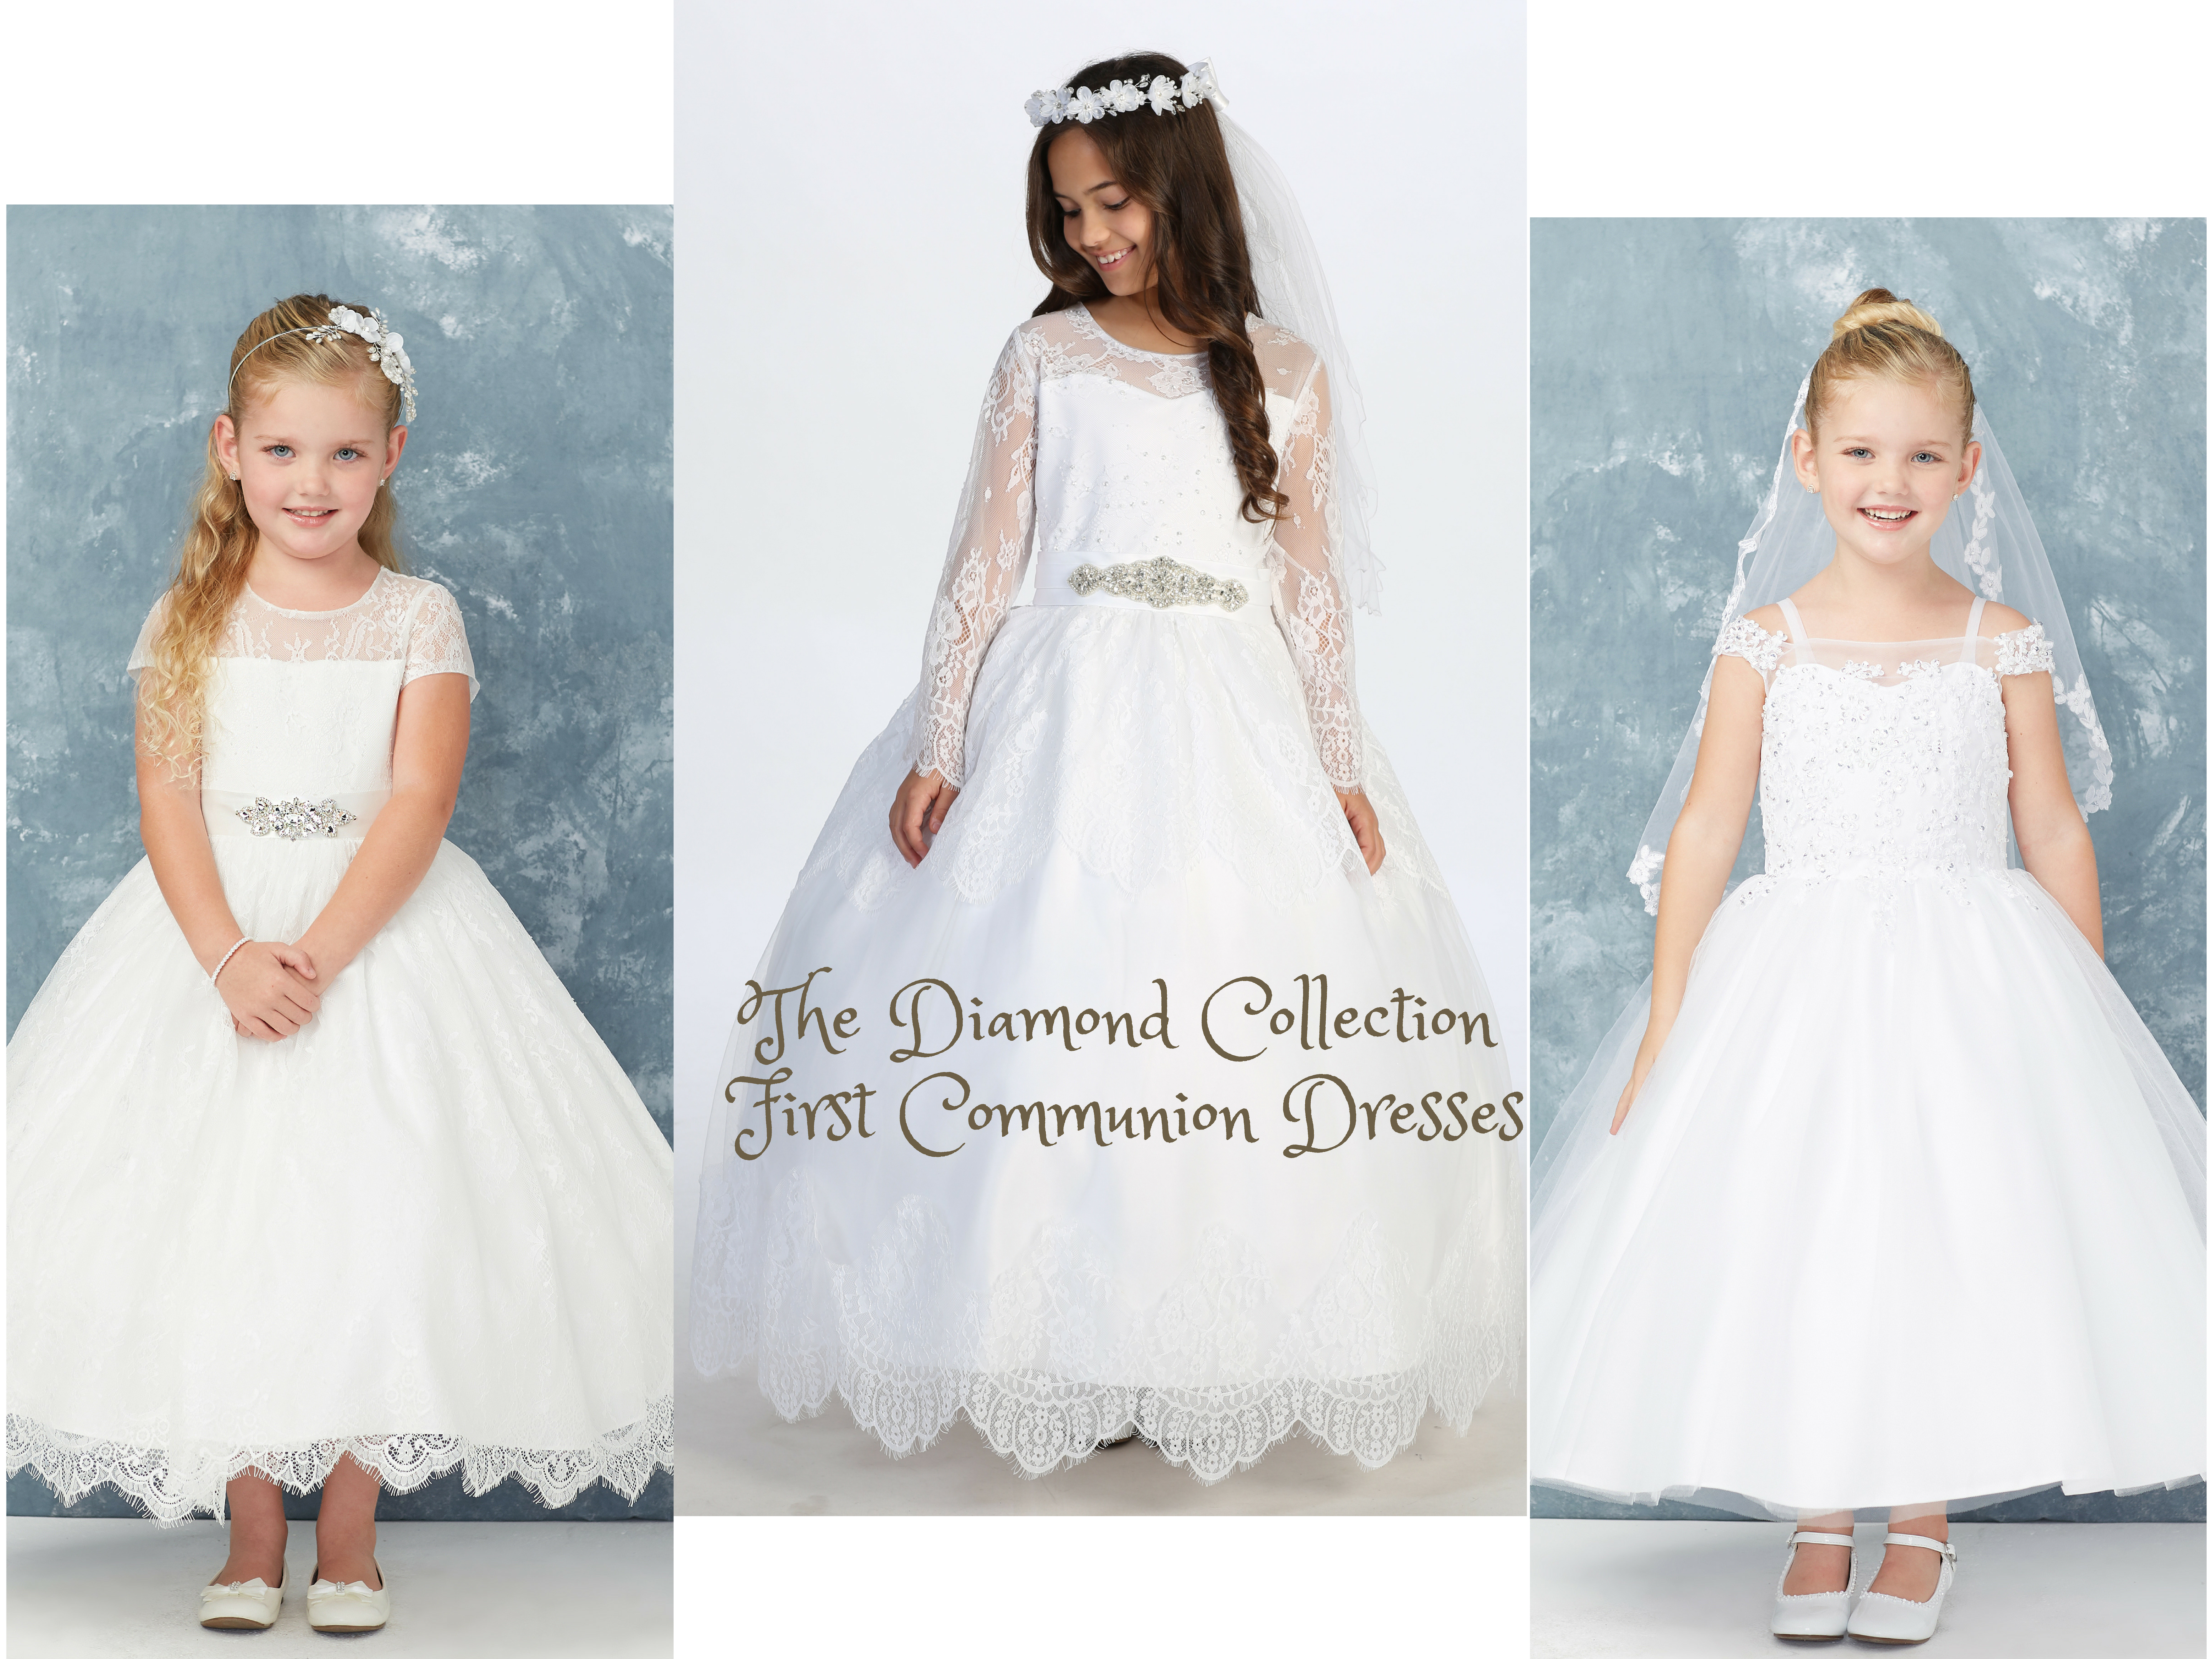 the-diamond-collection-communion-dresses.png